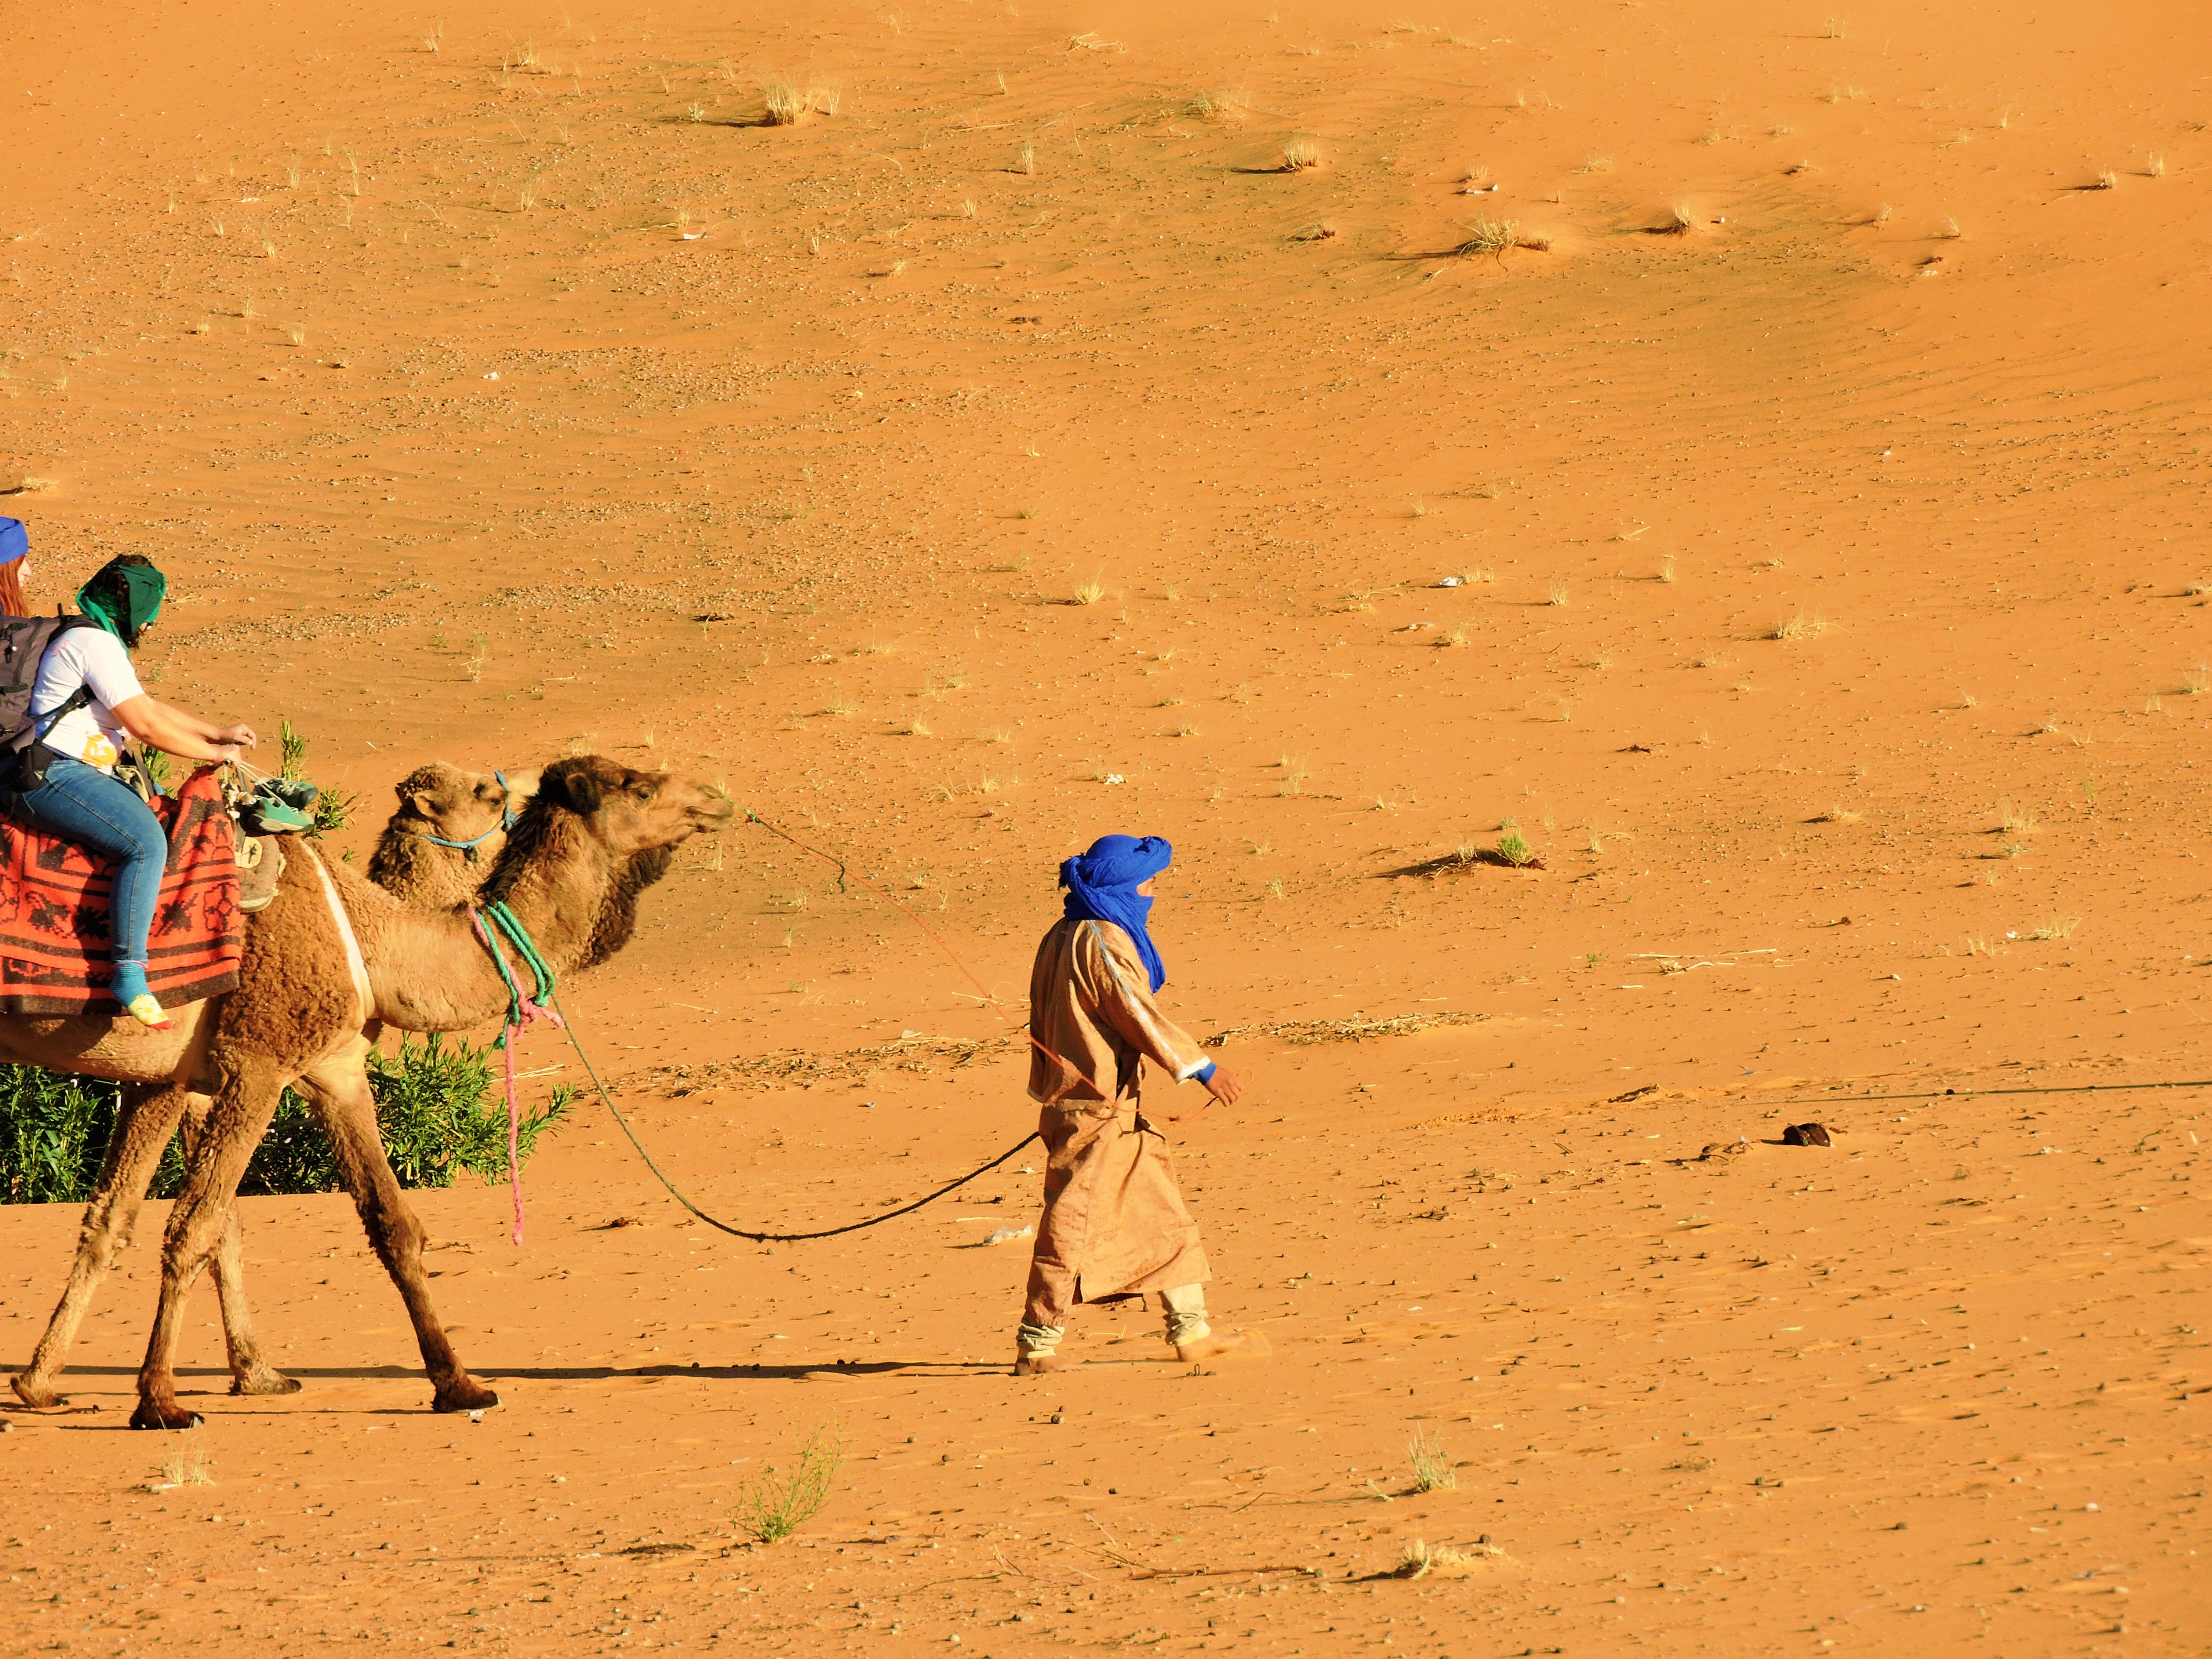 From Marrakech to the high dunes of Merzouga